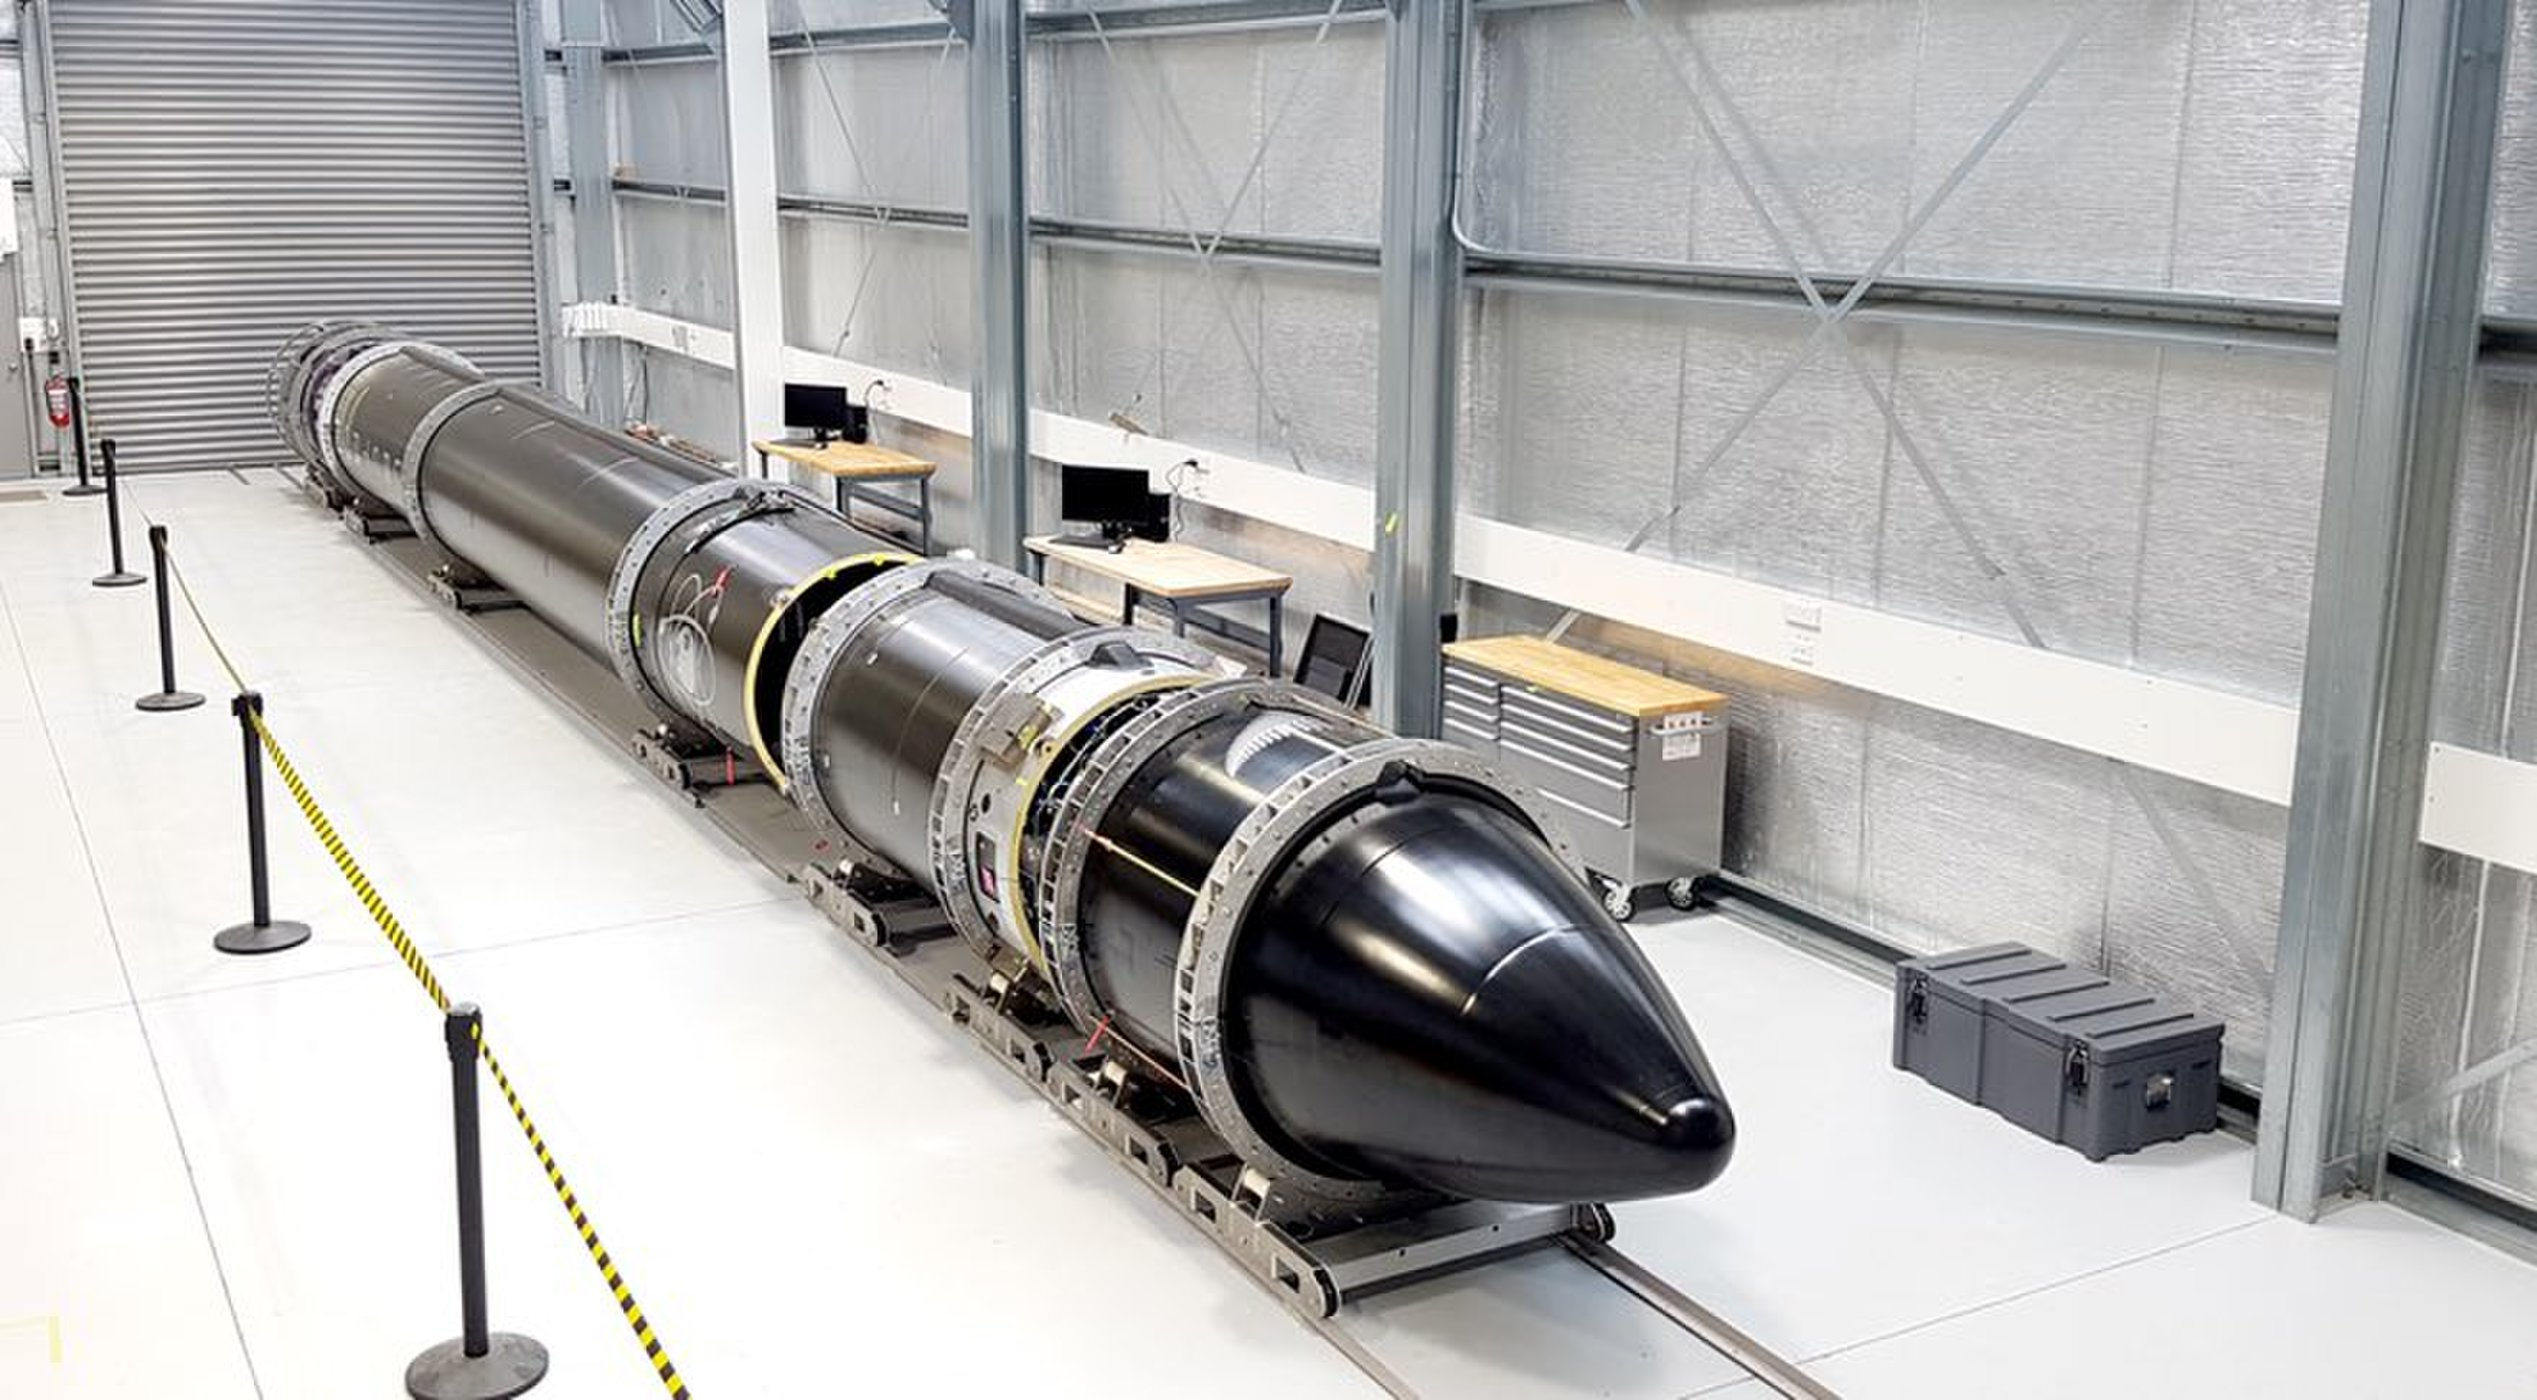 Rocket Lab's Electron Rocket aims to me a smaller and more-affordable launch solution for Earth orbit.